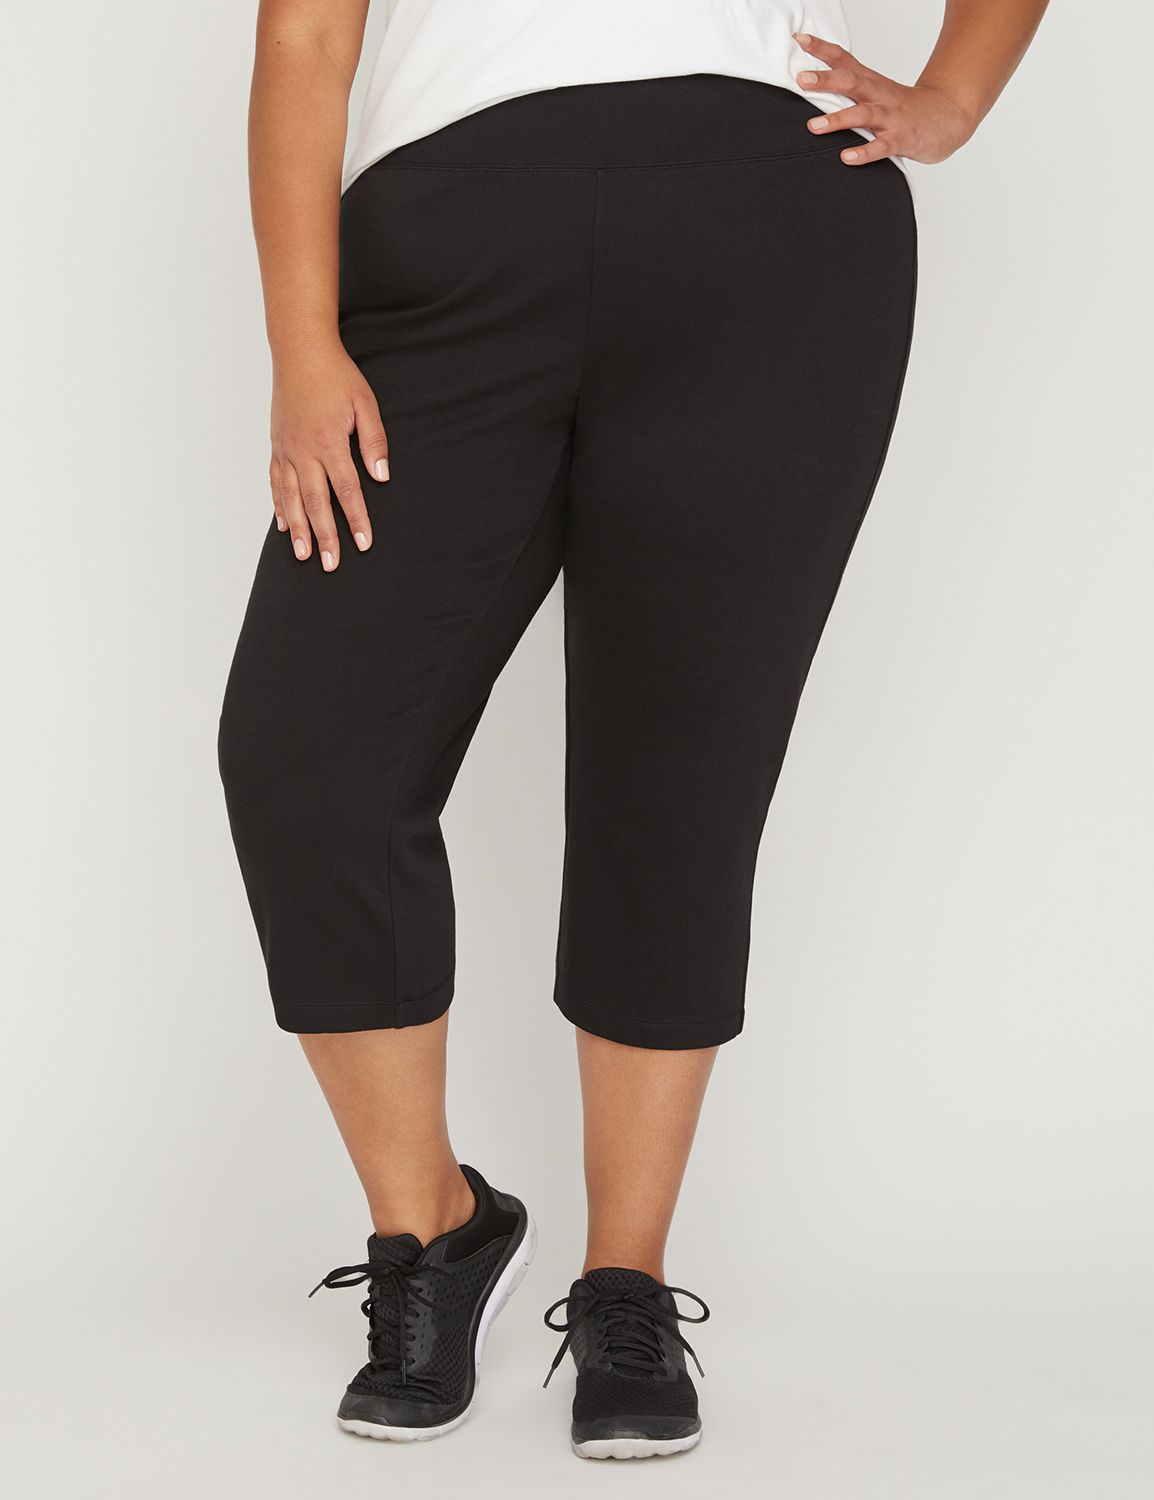 Yoga Capri Yoga Capri MP-300054228